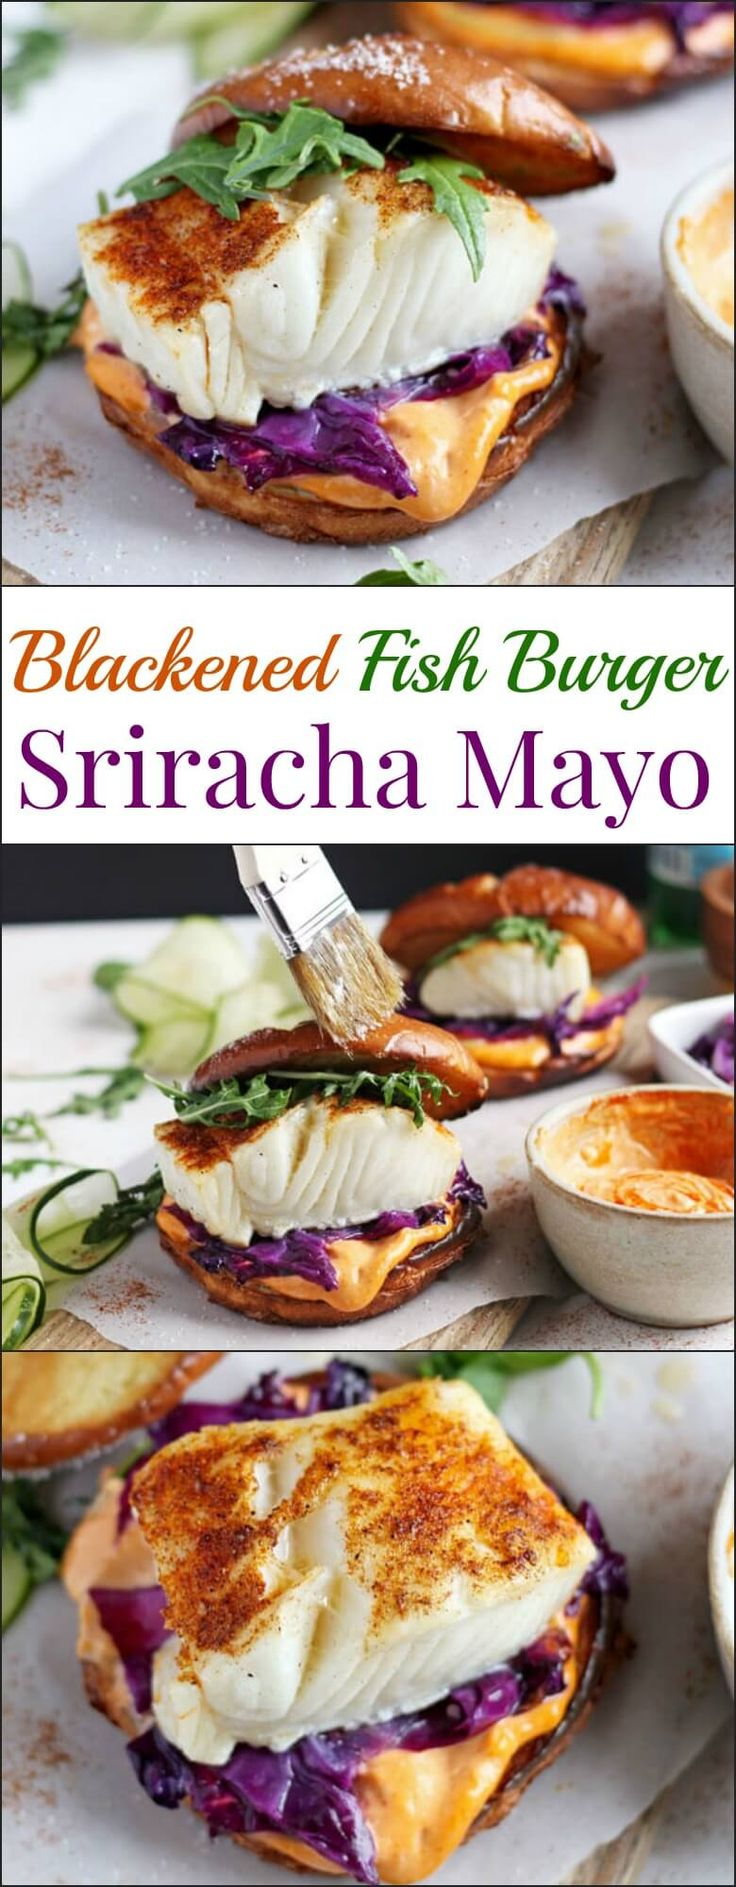 This blackened fish burger   sriracha mayo is a quick and easy weeknight meal that is healthy and bursting with flavor!  Ready and on your table in 30 minutes! ohsweetbasil.com